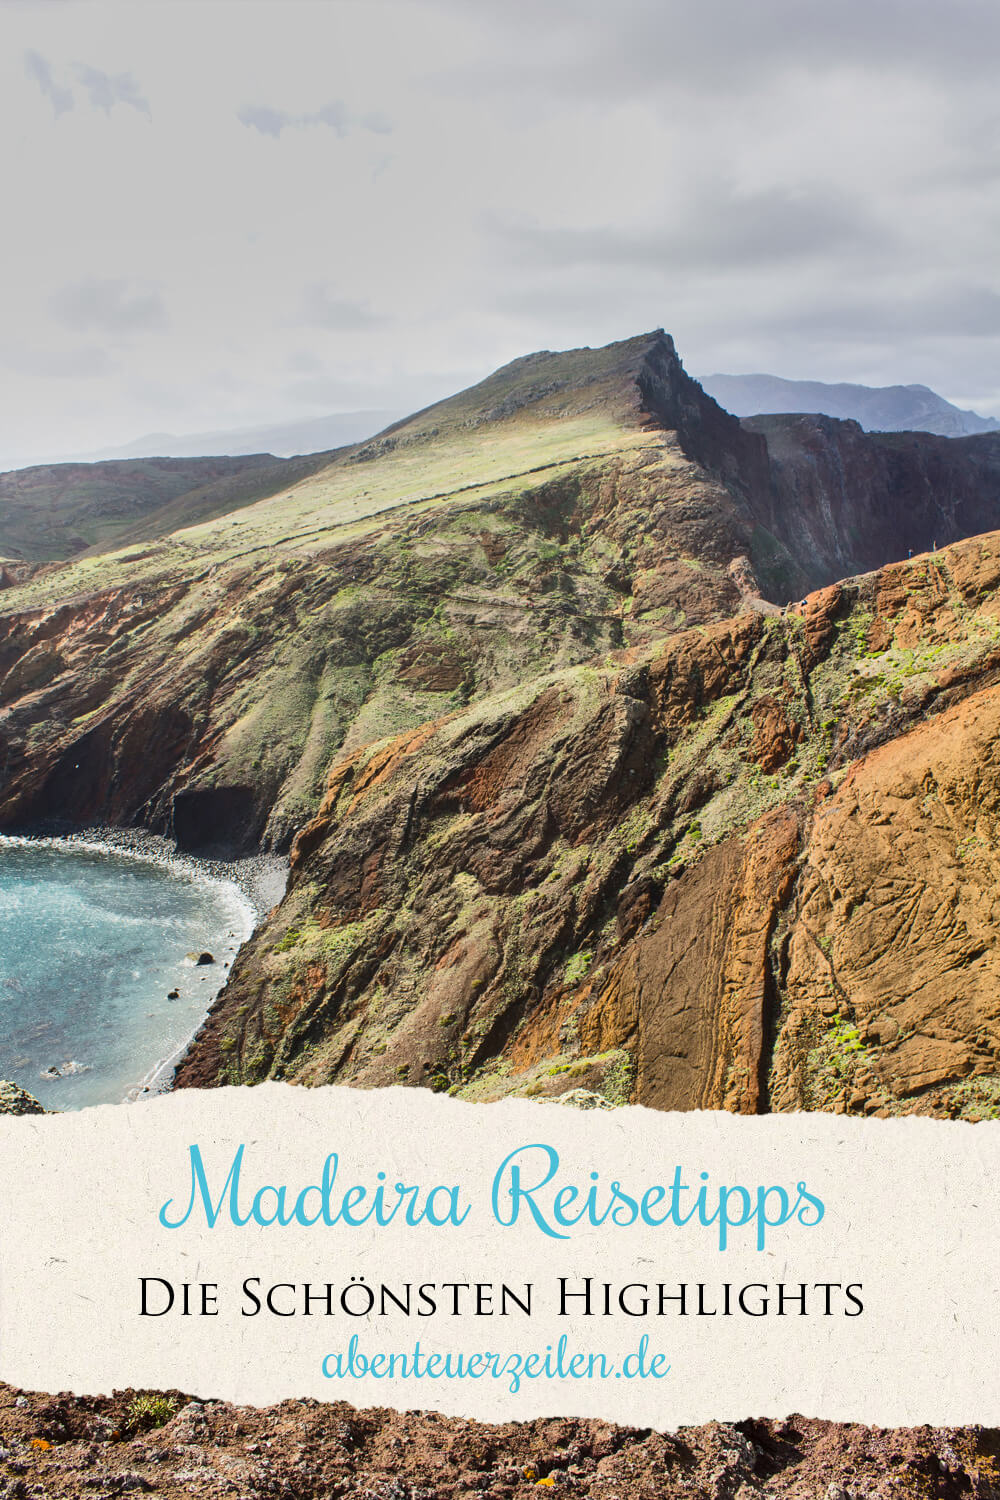 Wandern auf Madeira cover image